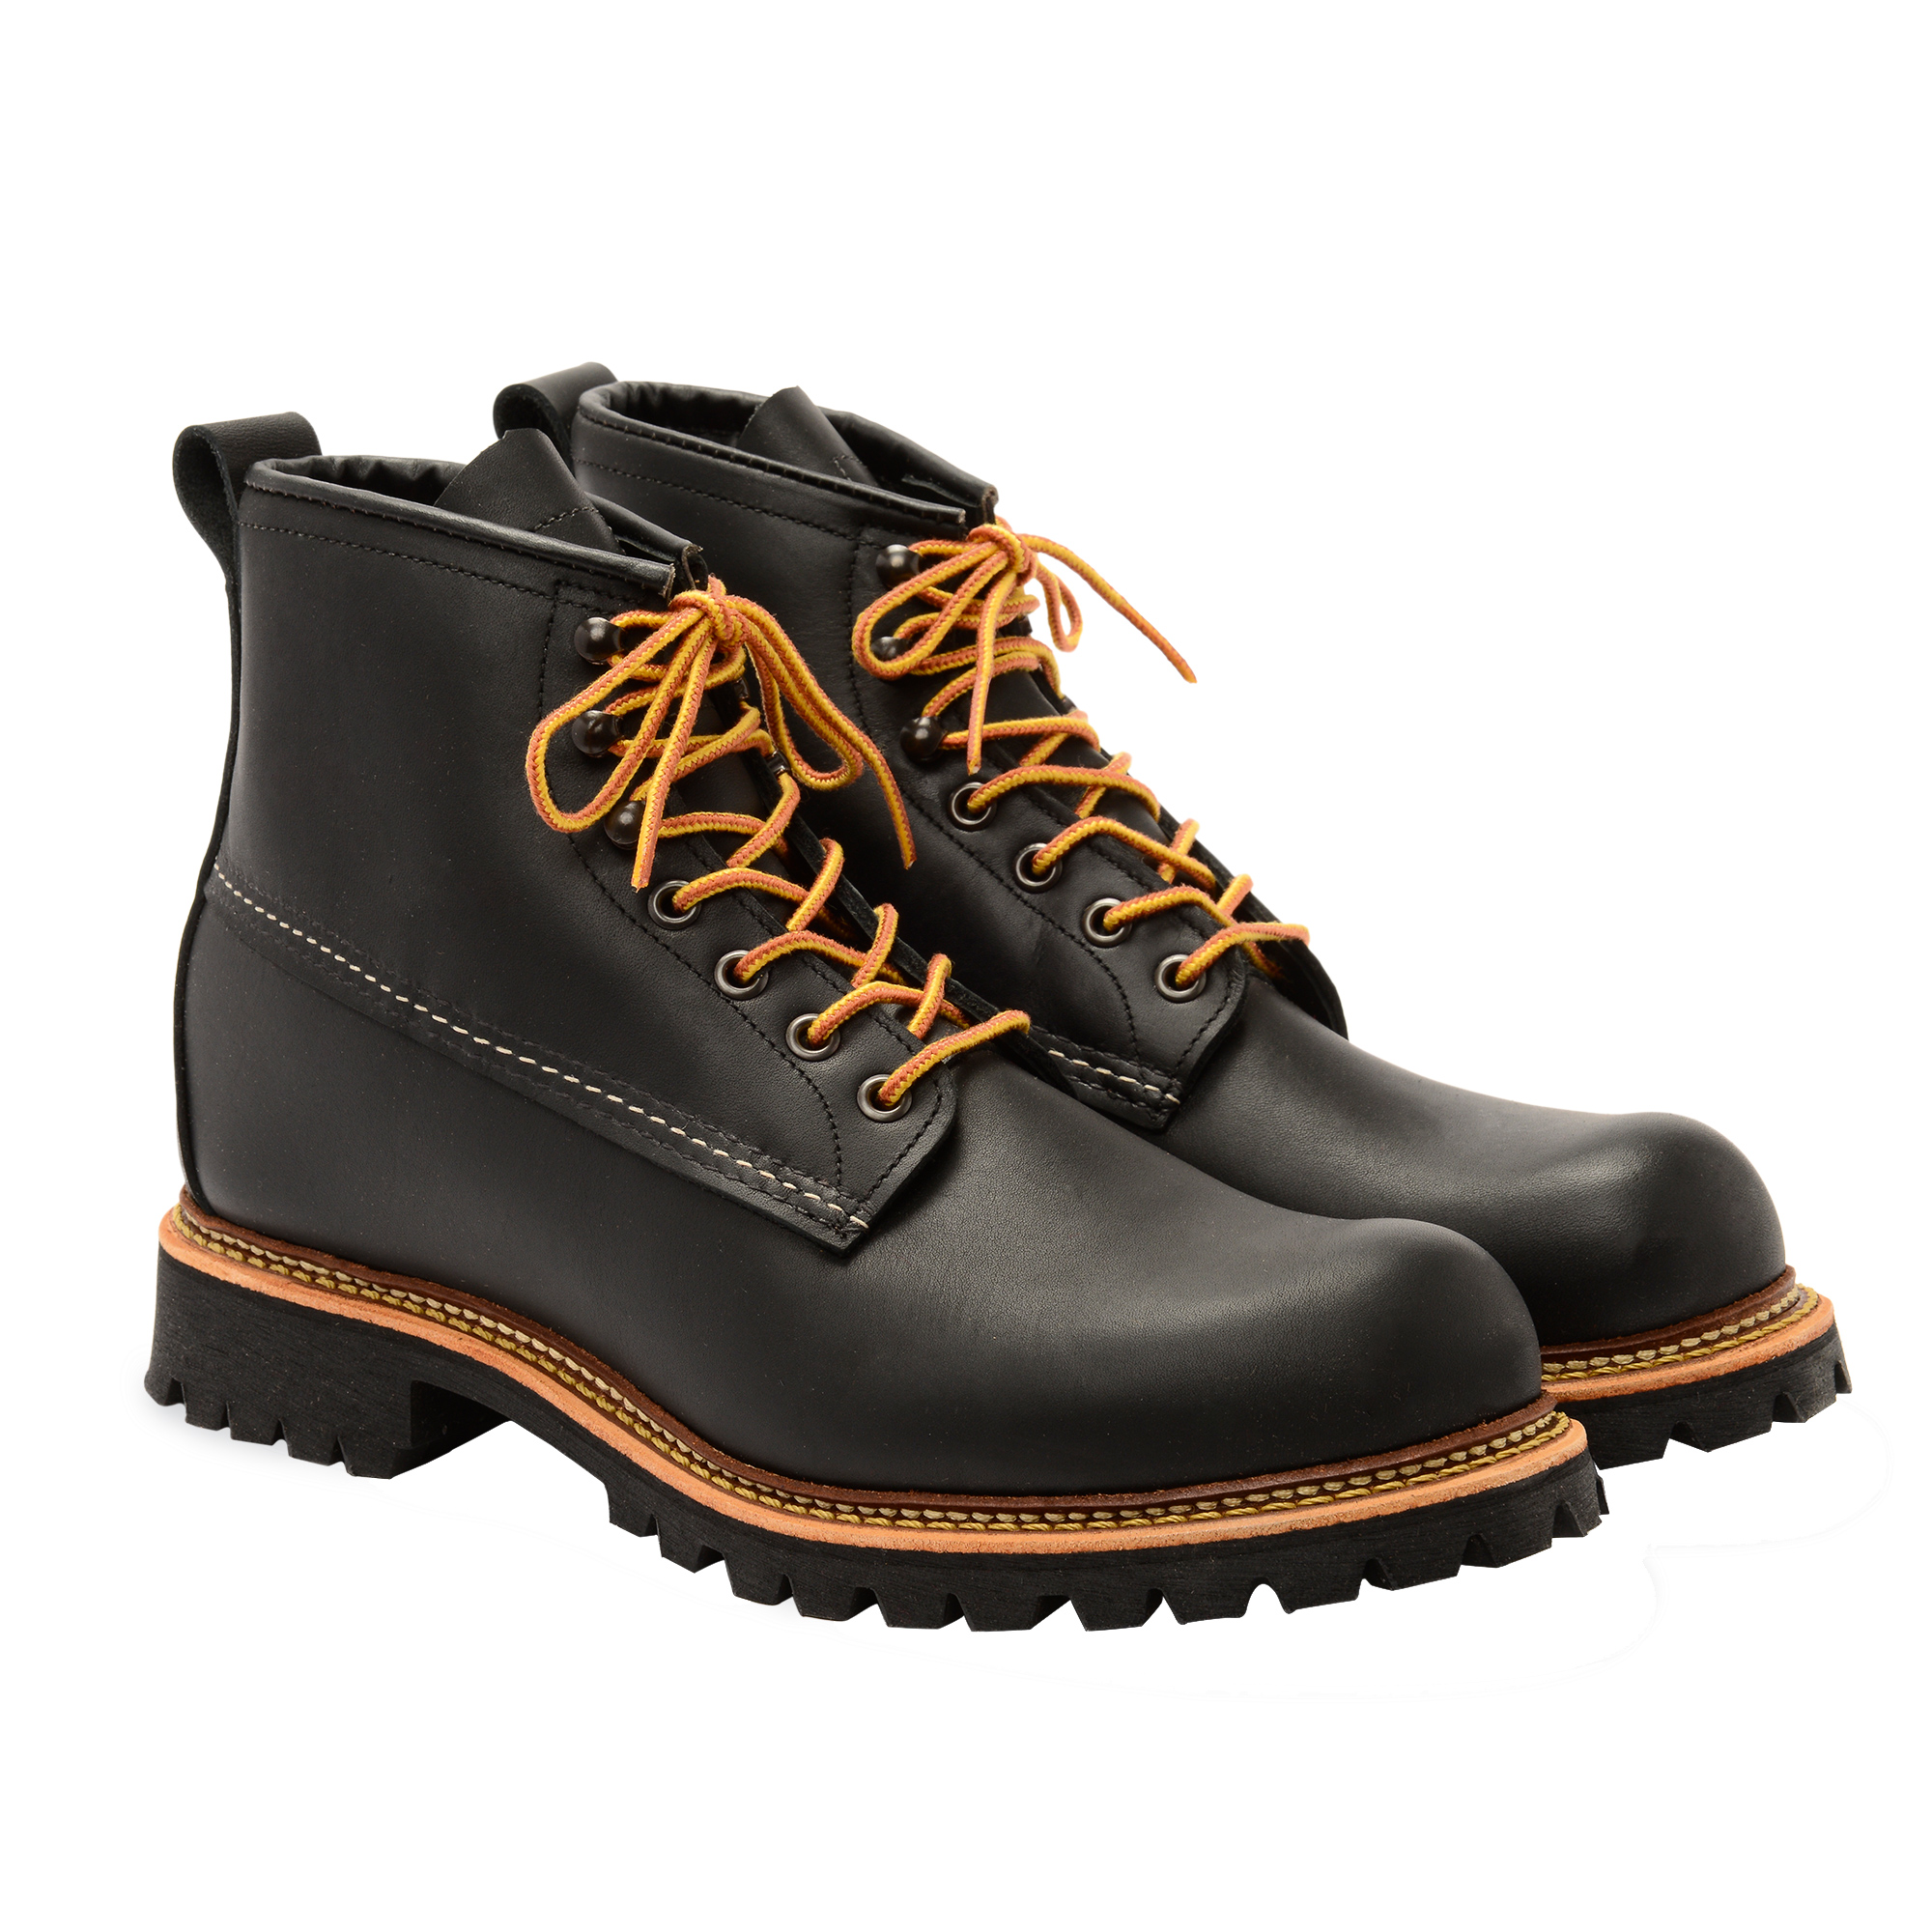 9debe03e896 Heritage American boots with frontier spirit | How To Spend It